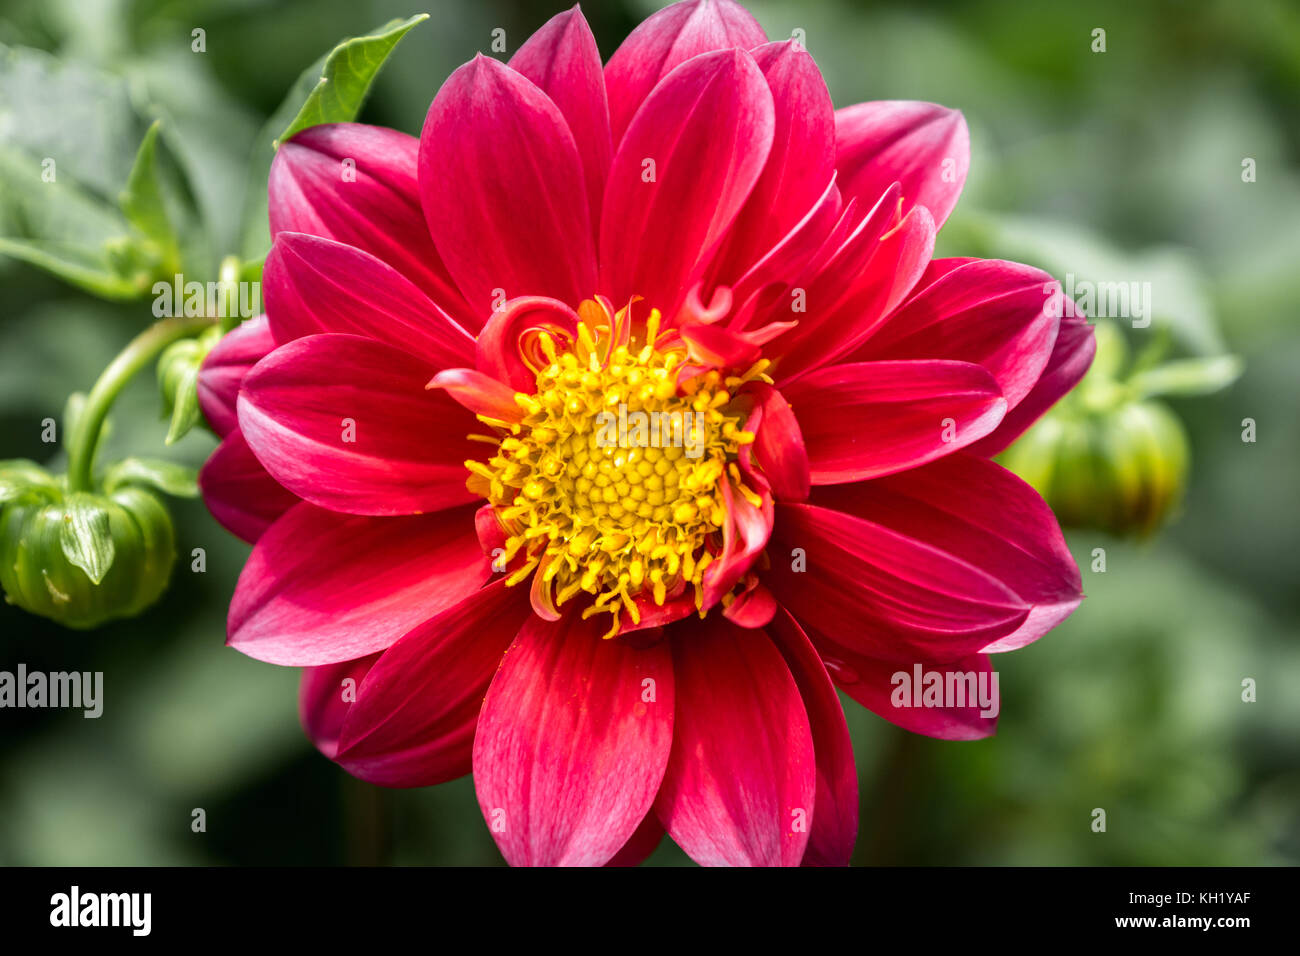 Dahlia Flower In Pink And Yellow Color Closeup With Blurred Stock